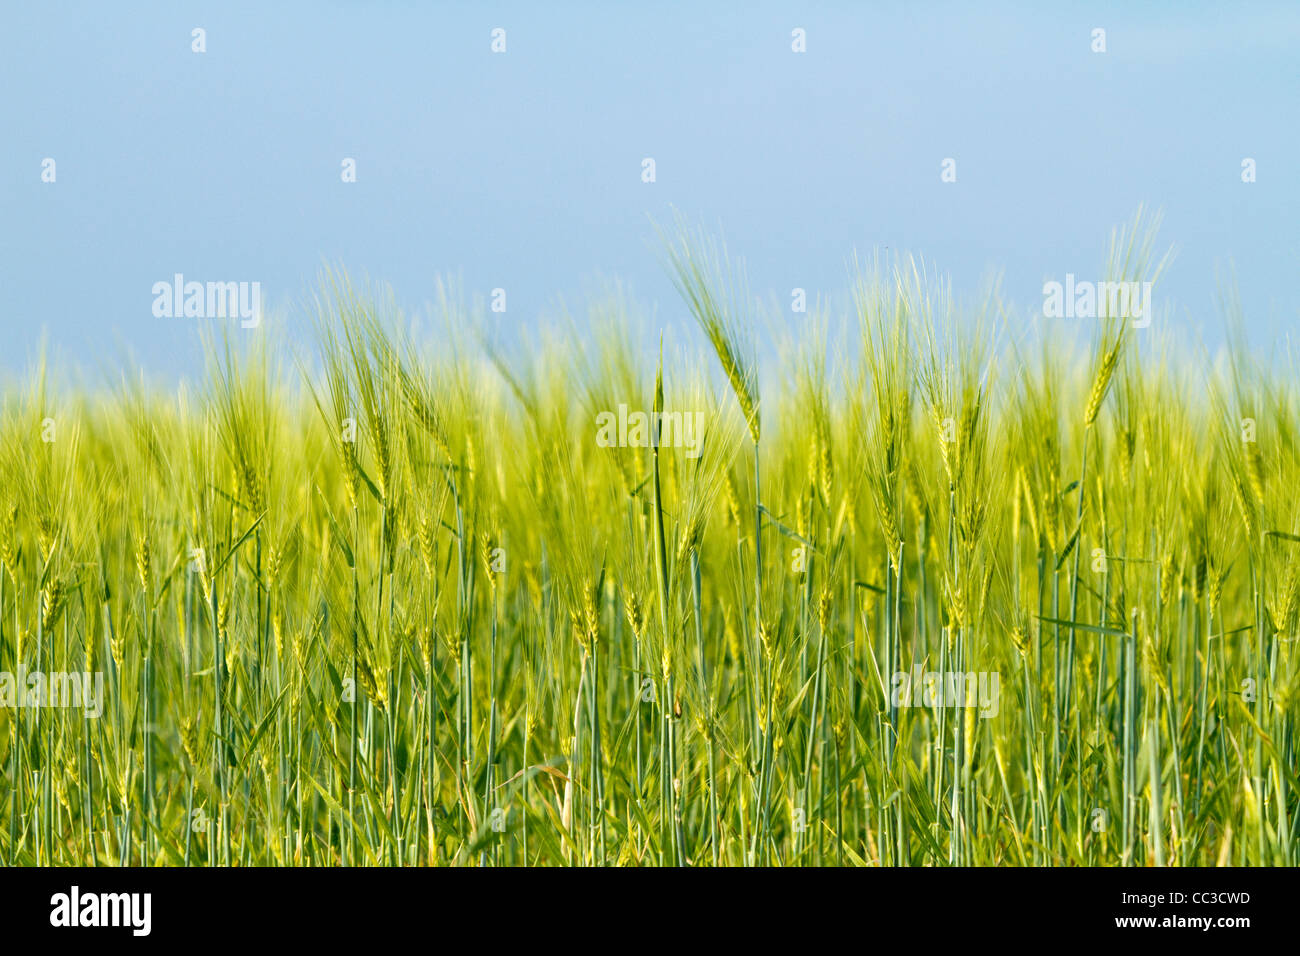 wheat field under a blue sky - Stock Image